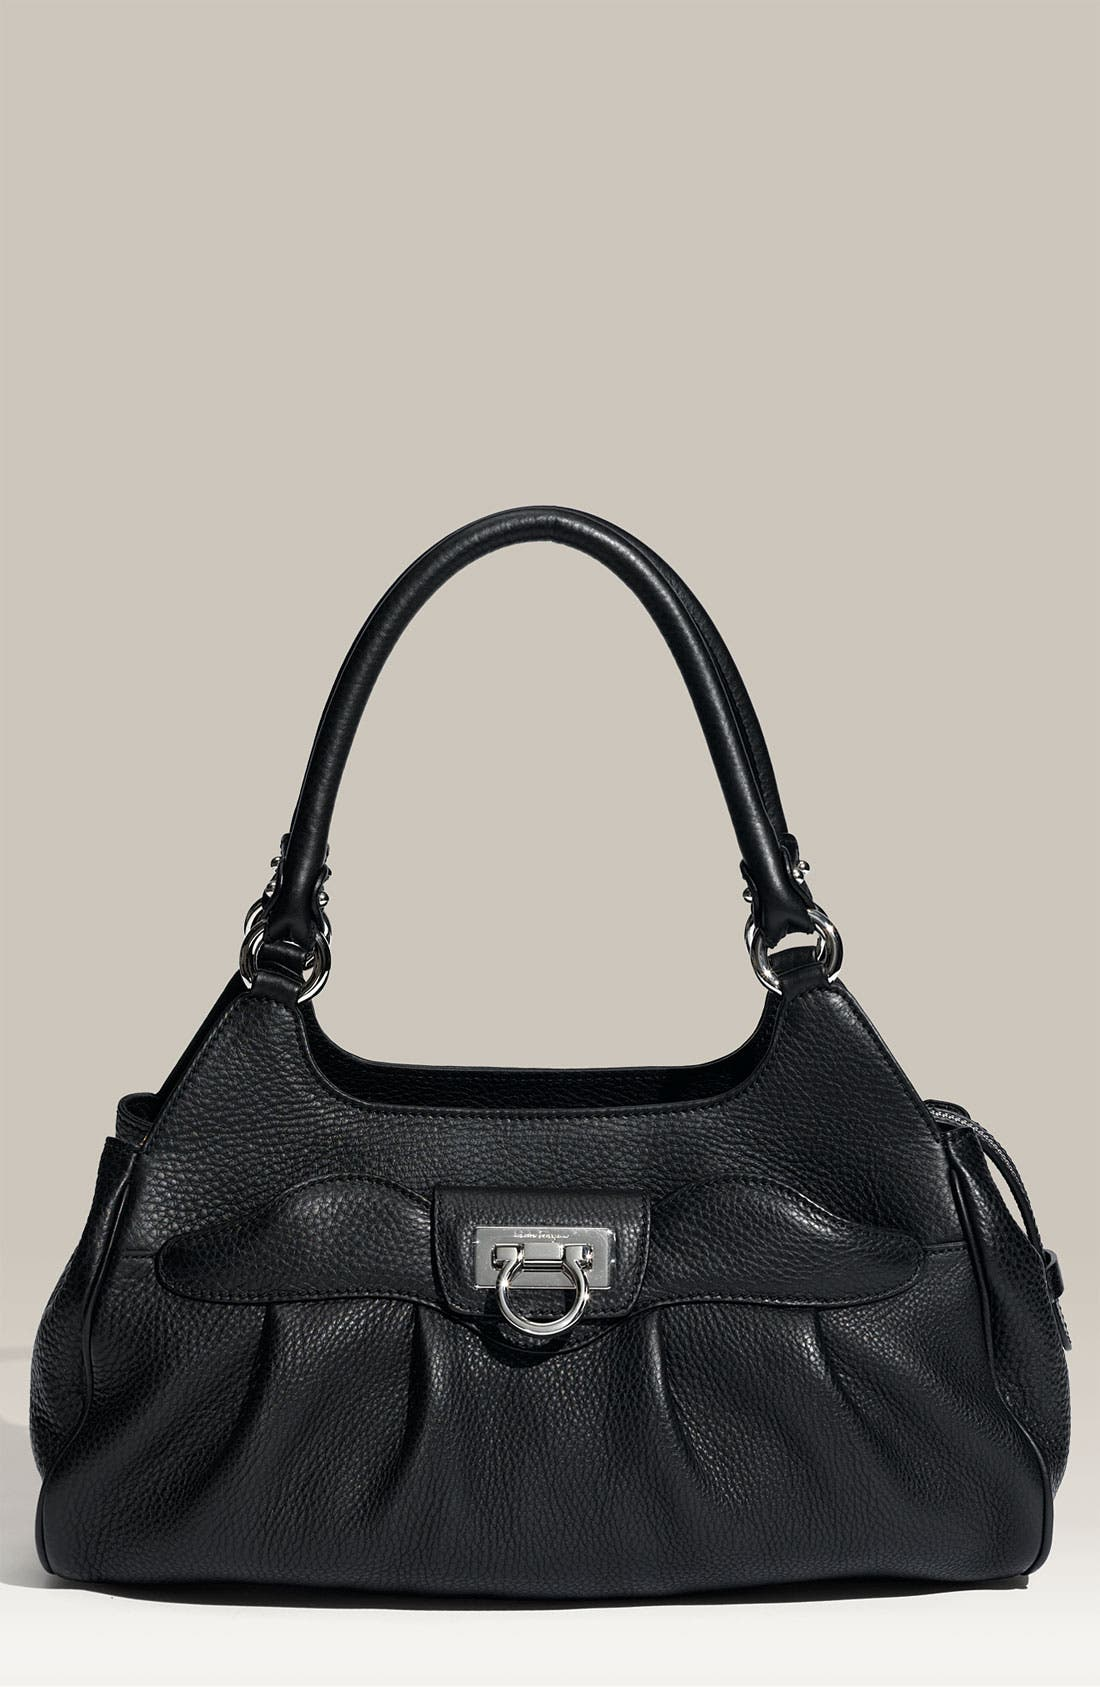 Alternate Image 1 Selected - Salvatore Ferragamo 'Vitello' Leather Shopper